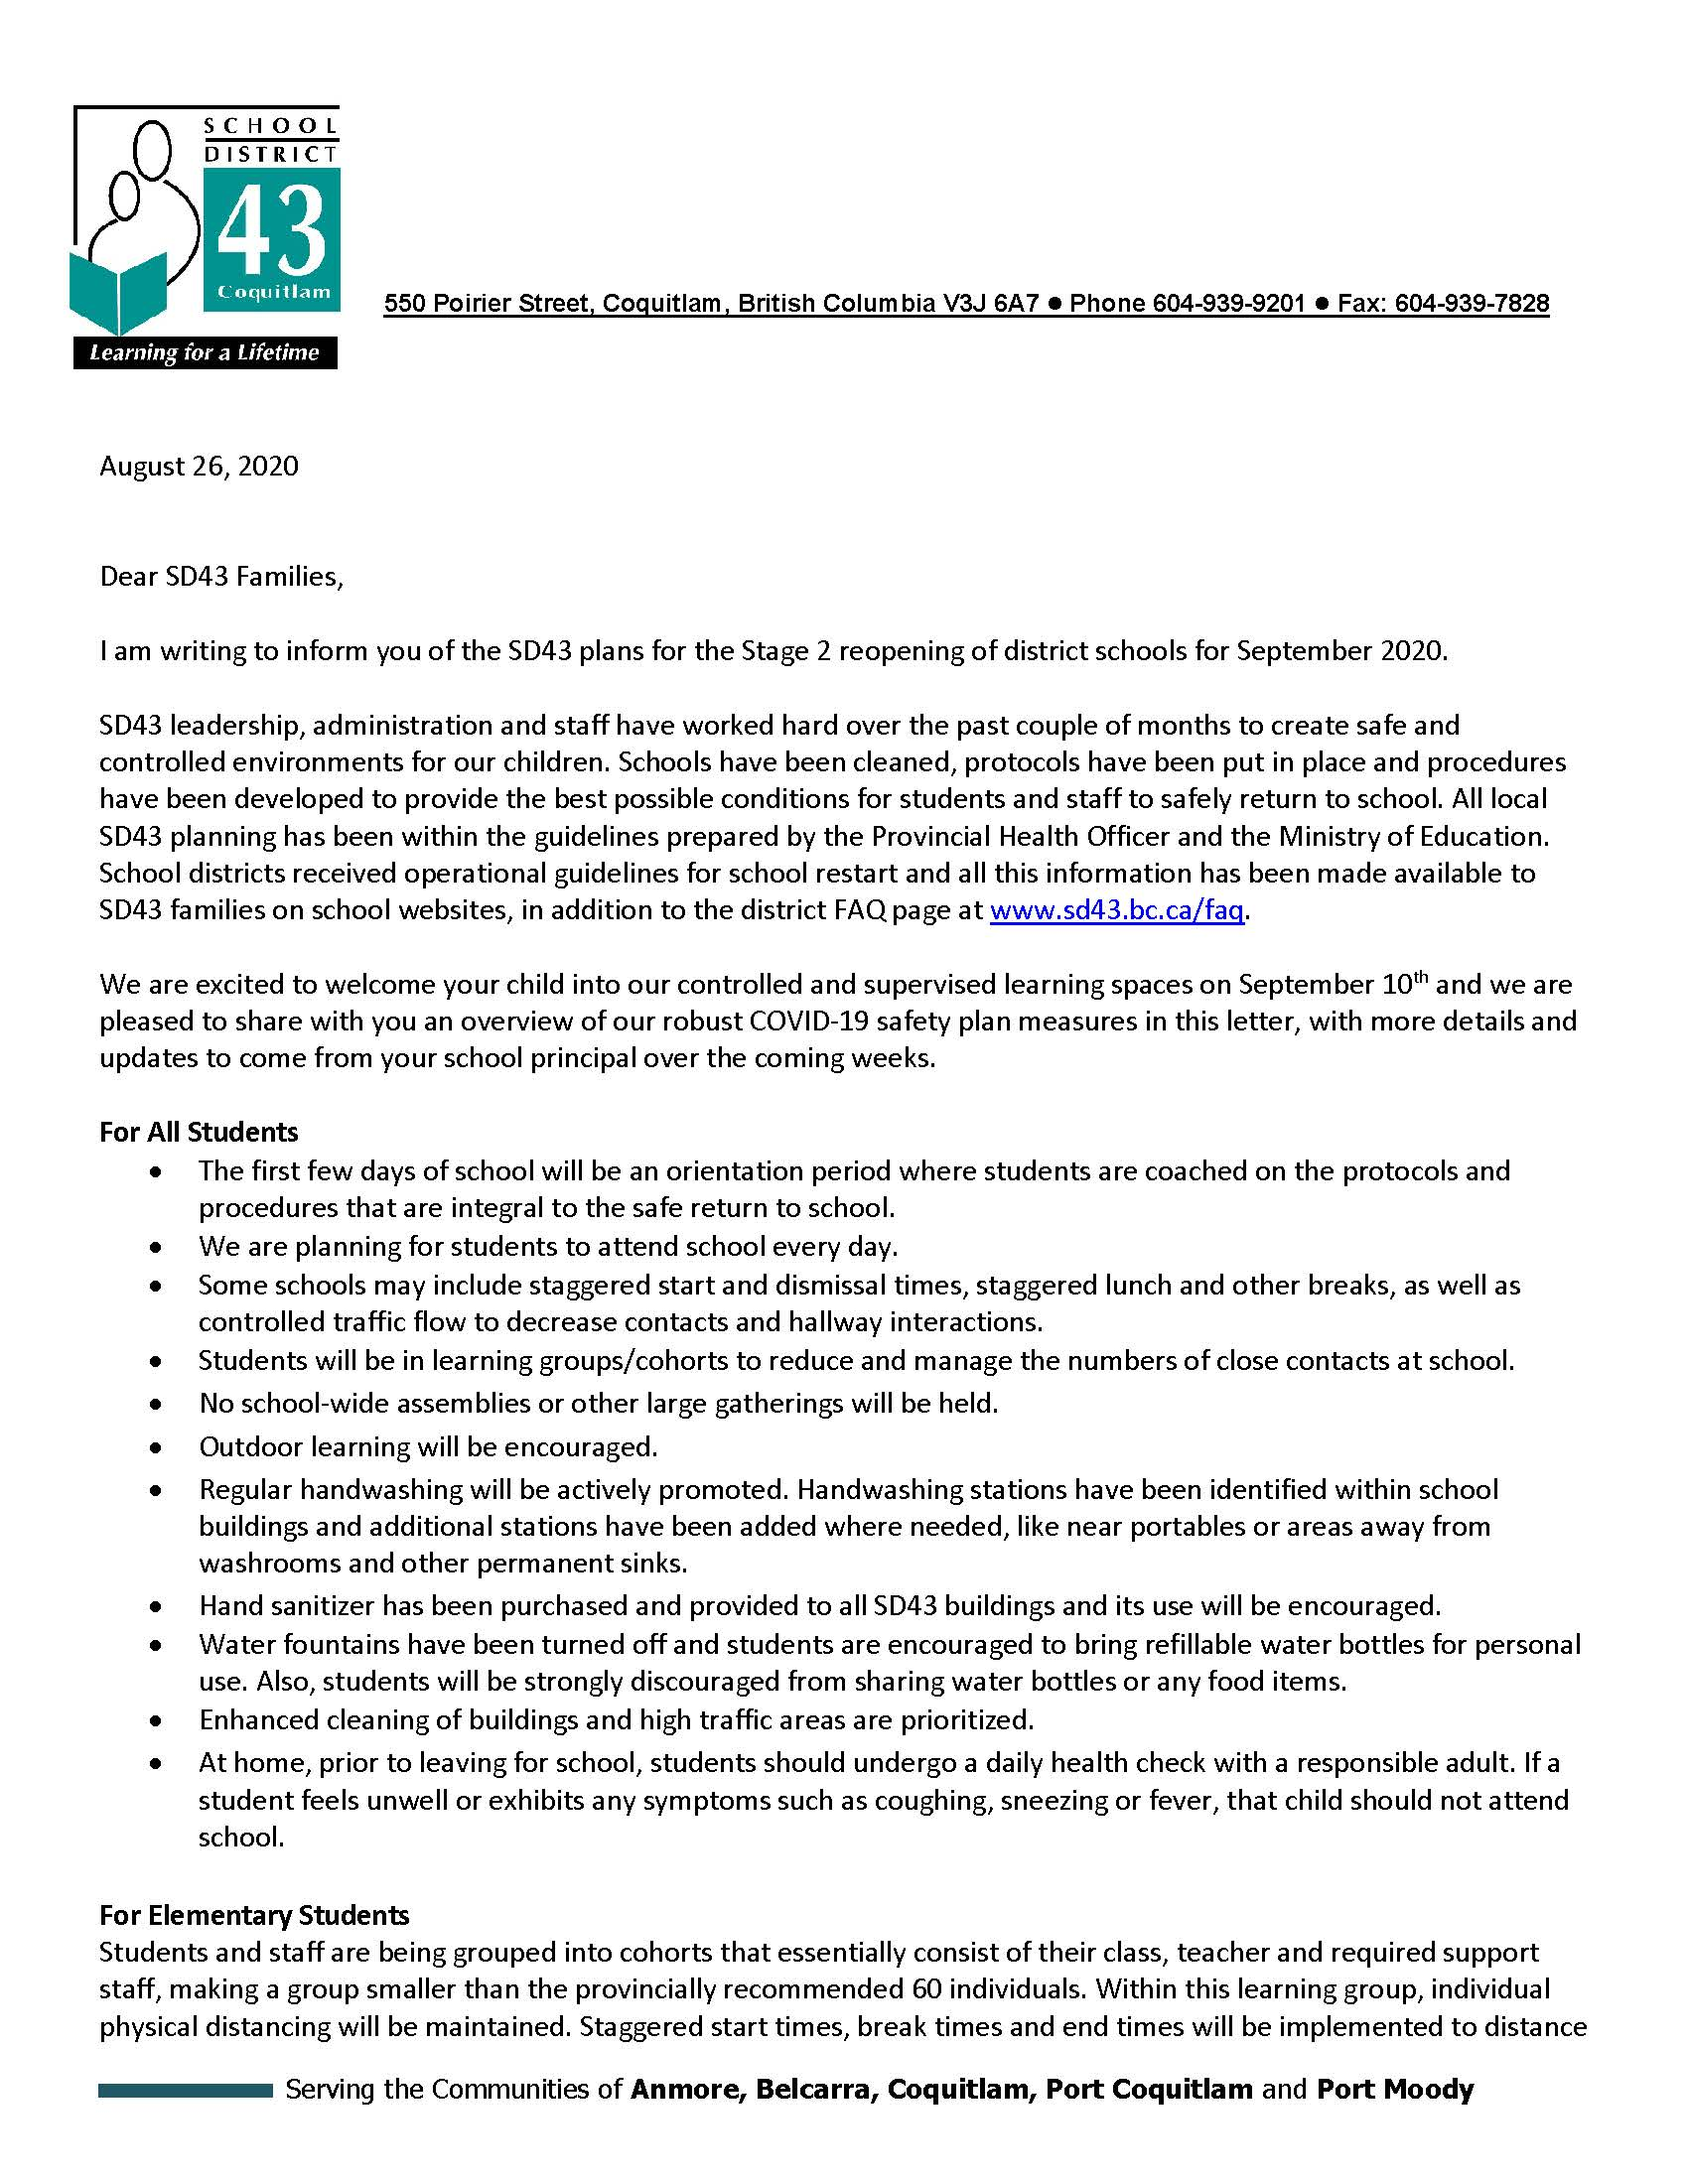 Superintendent Letter to Parents-Guardians re SD43 September 2020 08 26 2020_Page_1.jpg